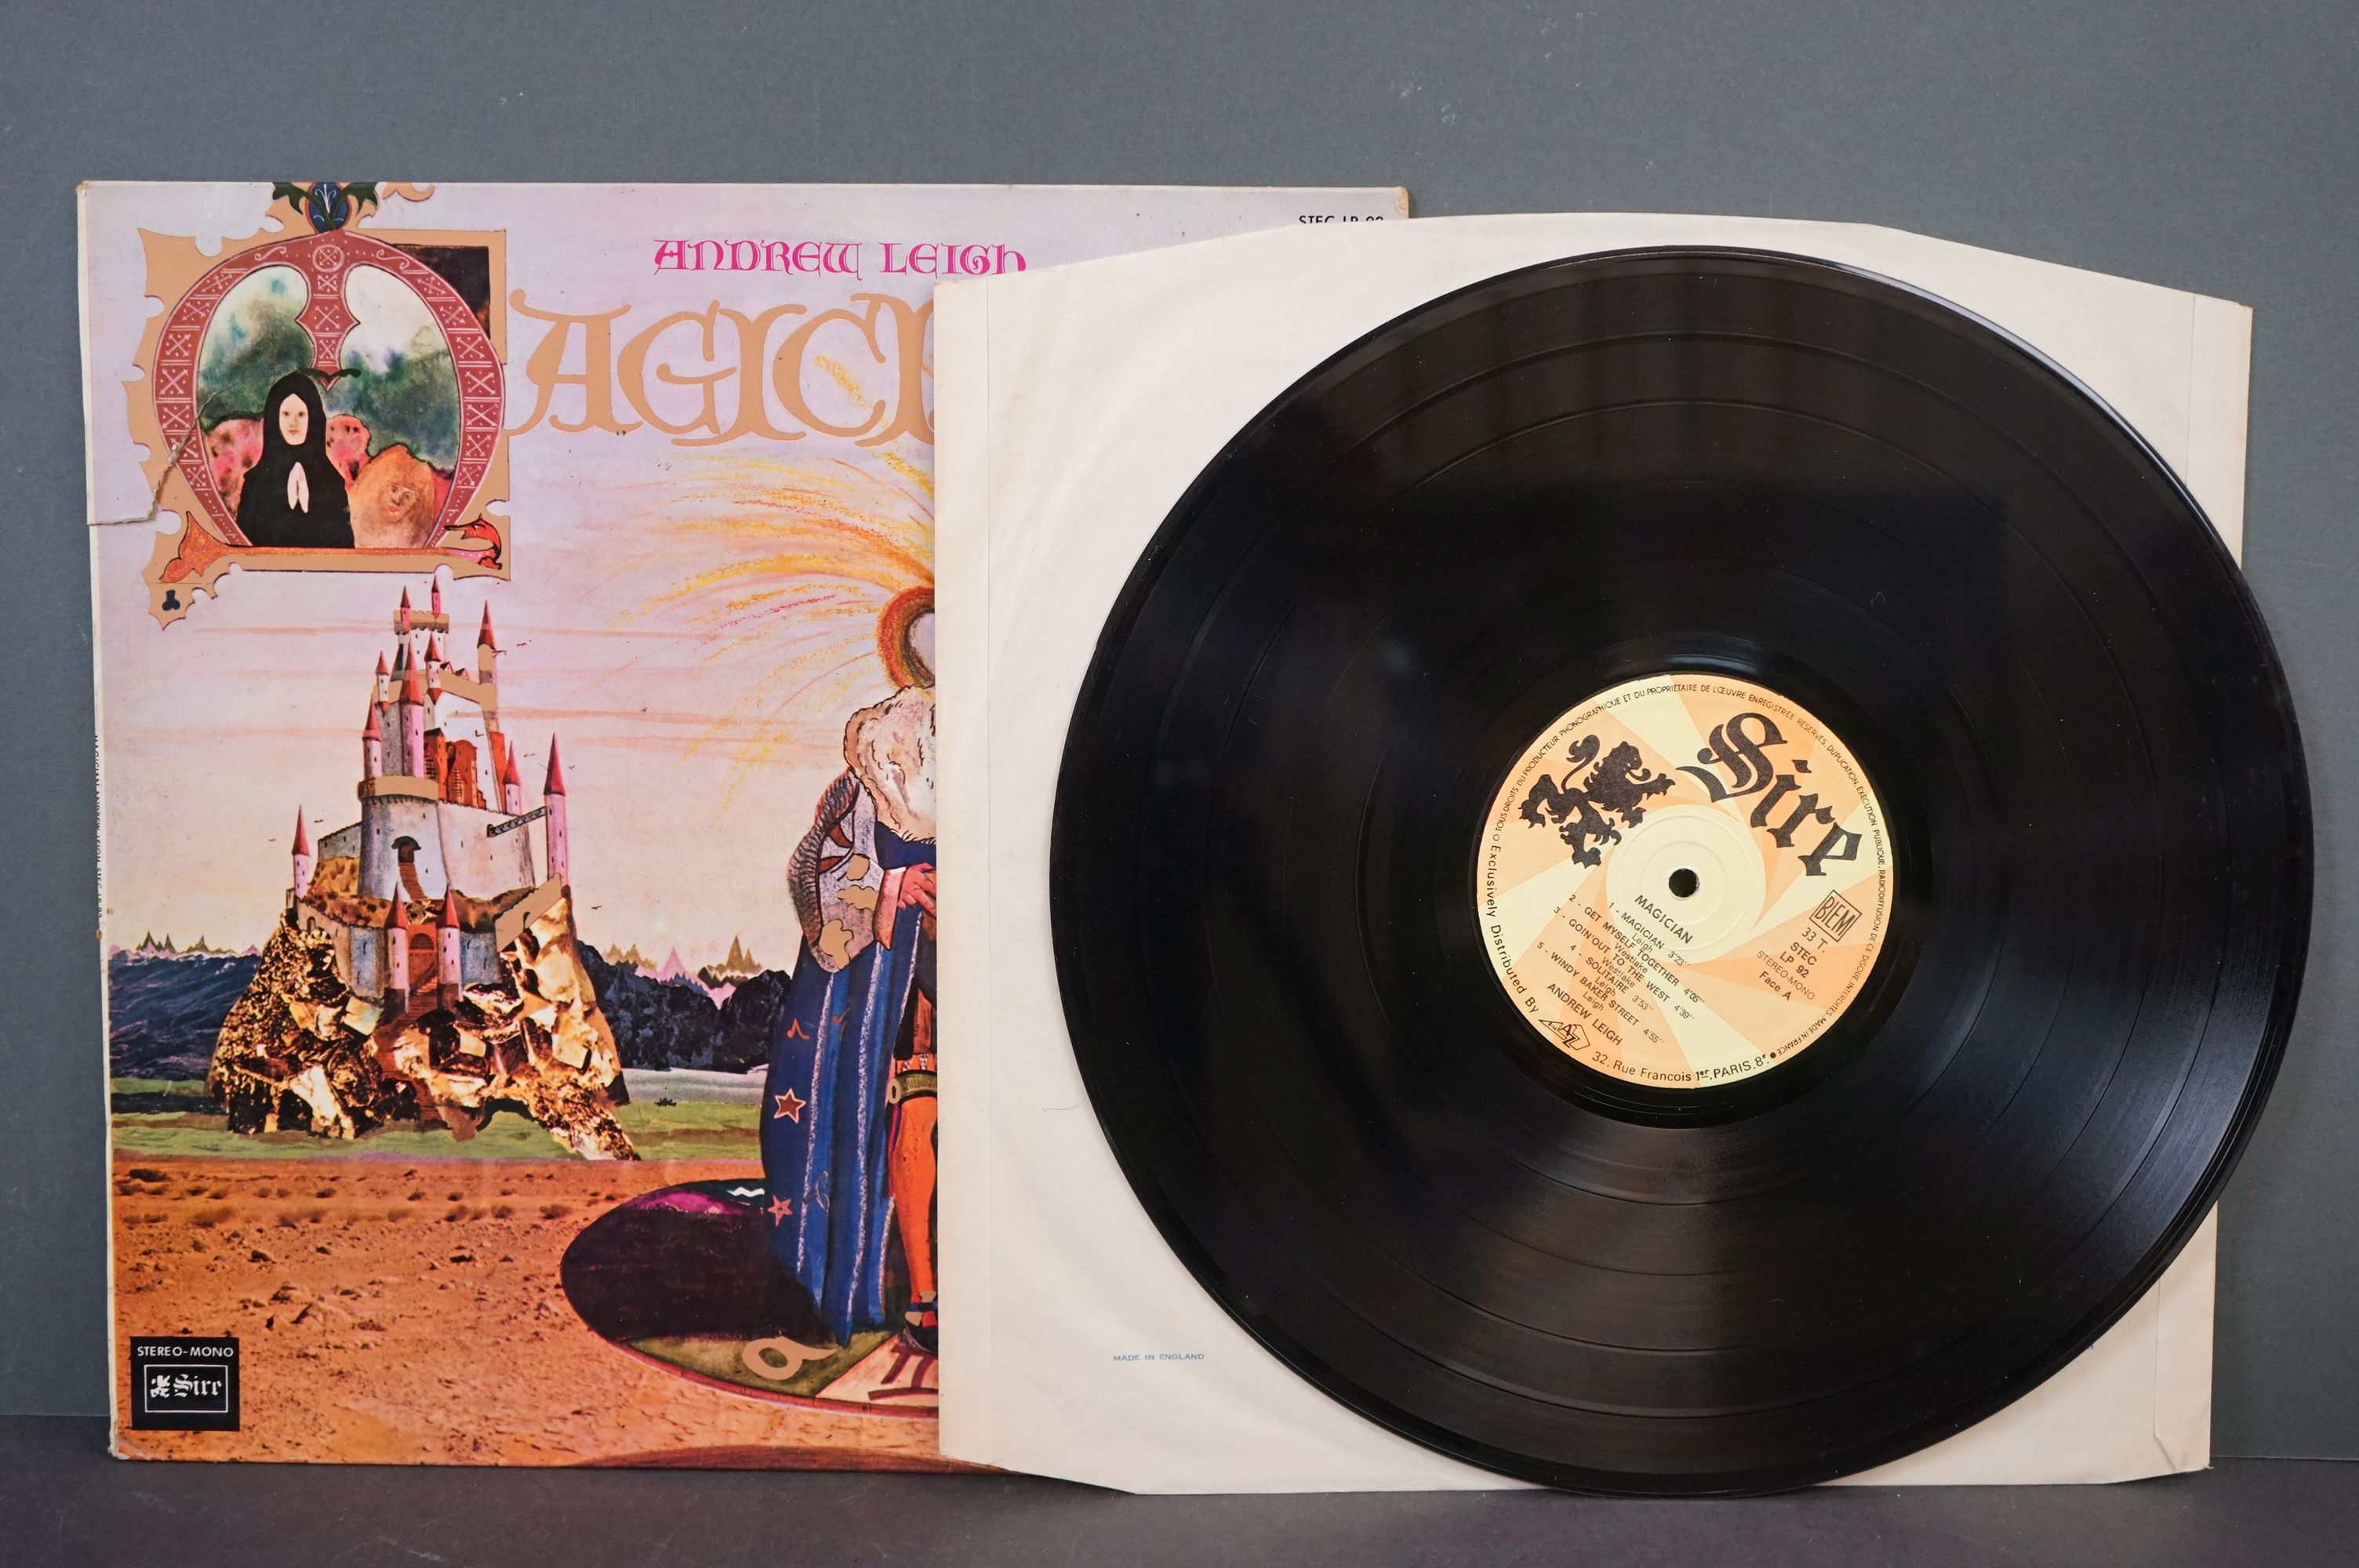 Vinyl - Psych / Acid Folk - Andrew Leigh - Magician. 1970 French 1st Pressing, Sire Records, - Image 2 of 3